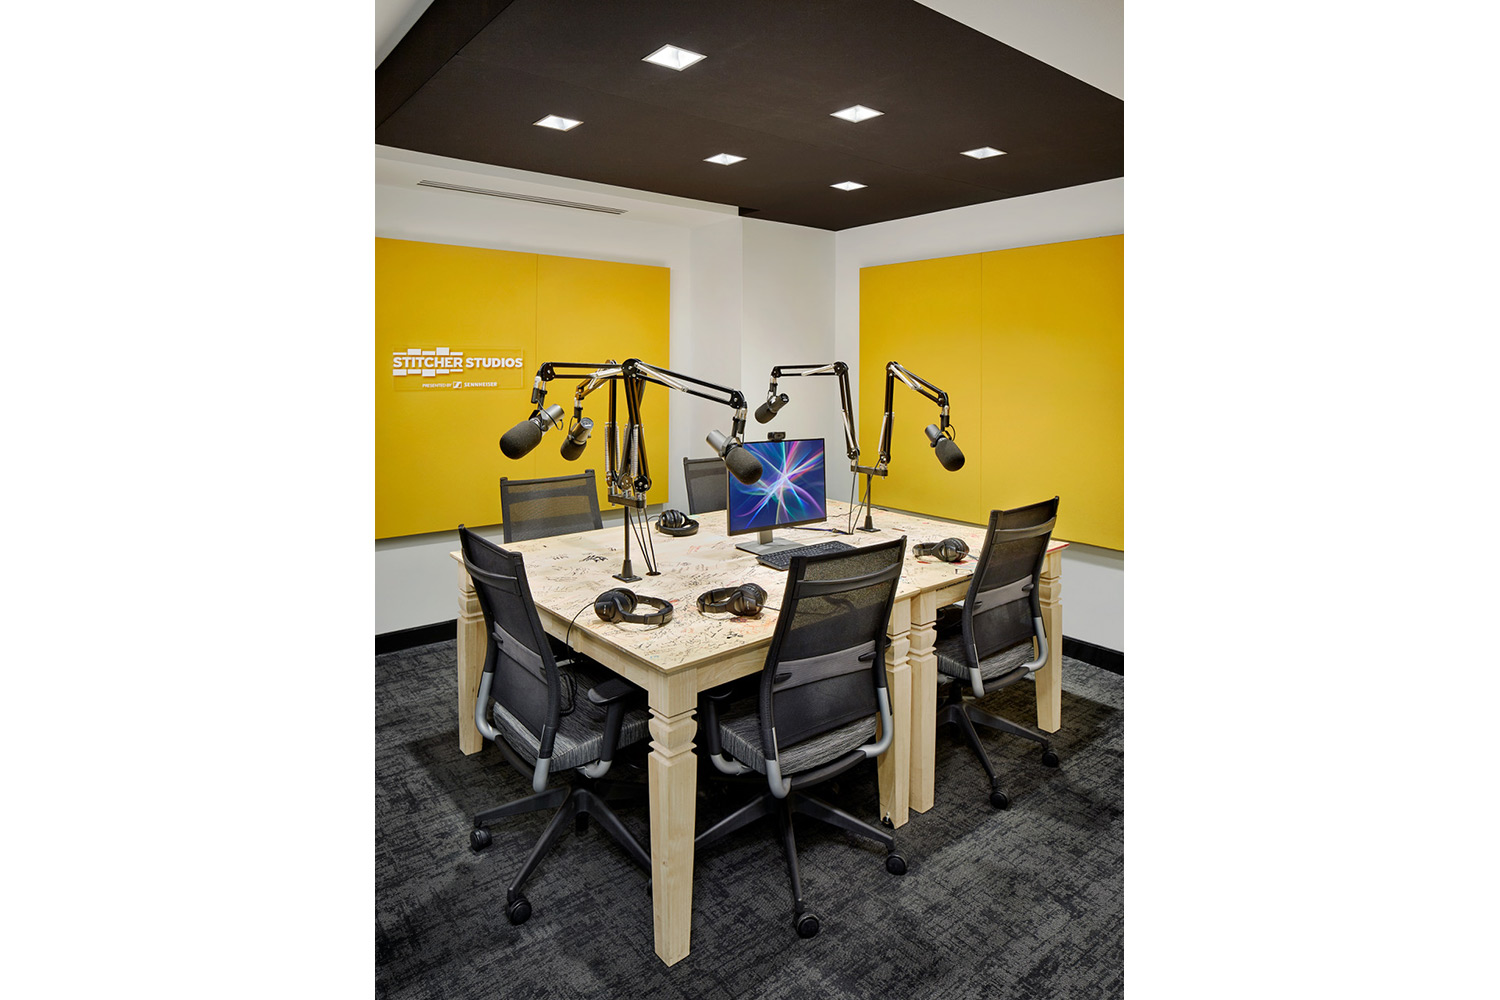 Stitcher is among the earliest, the most creative and most successful podcast creator companies. Their team made a move to build out larger production facilities in both its NY and LA offices and they chose WSDG to design their new podcast studios facilities. Studio C.